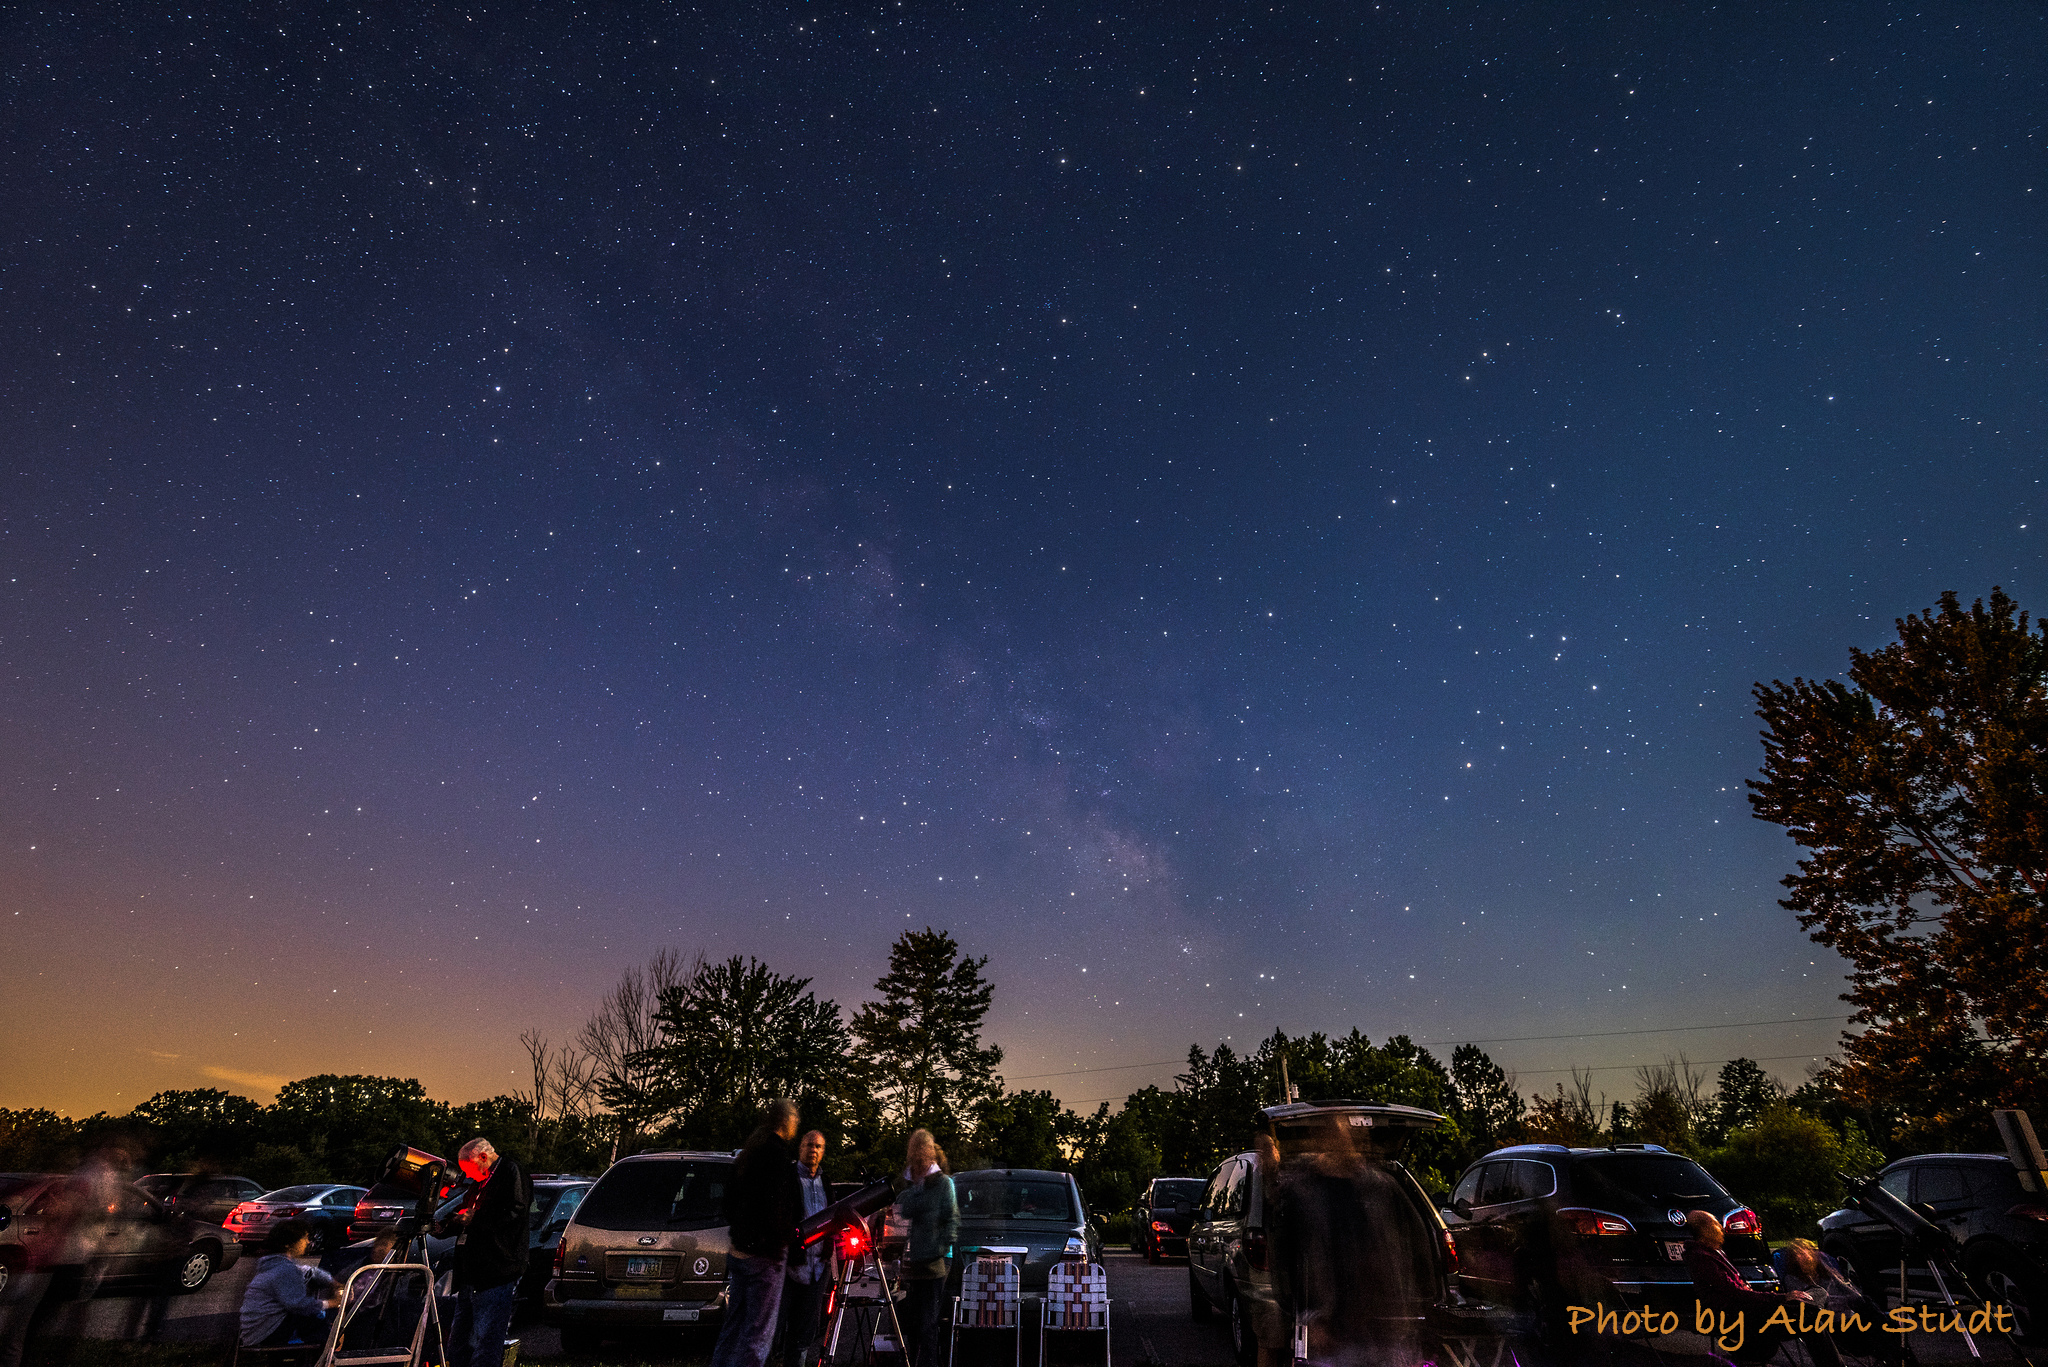 Photo: Astronomers with their telescopes. Photo by Alan Studt.